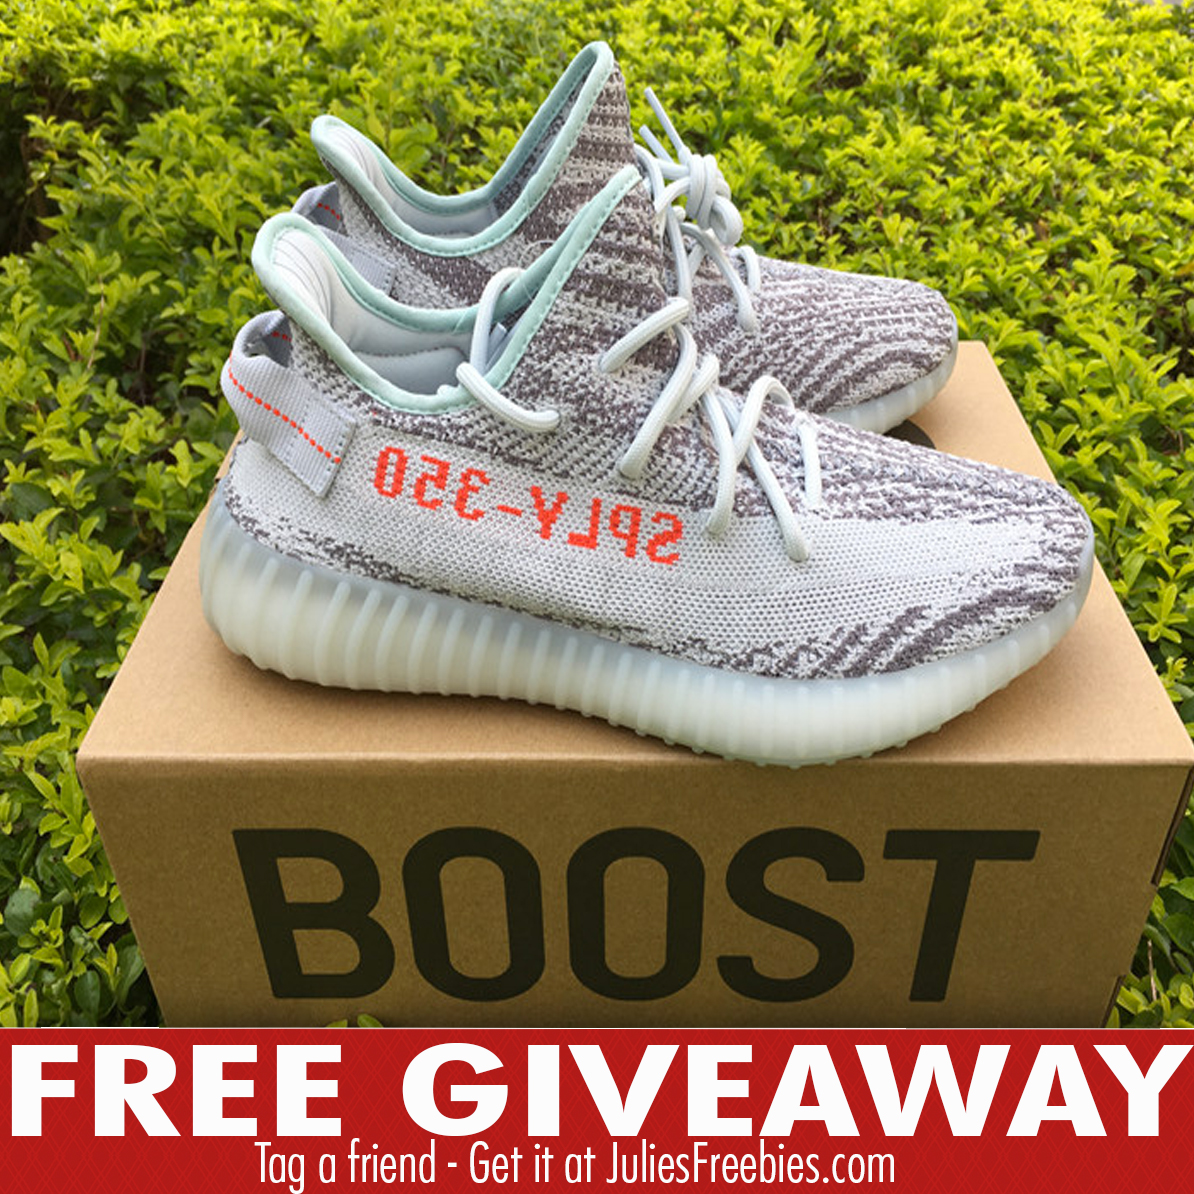 3429e1c2f347a Here is an offer where you can enter the Adidas Yeezy Boost Shoes giveaway.